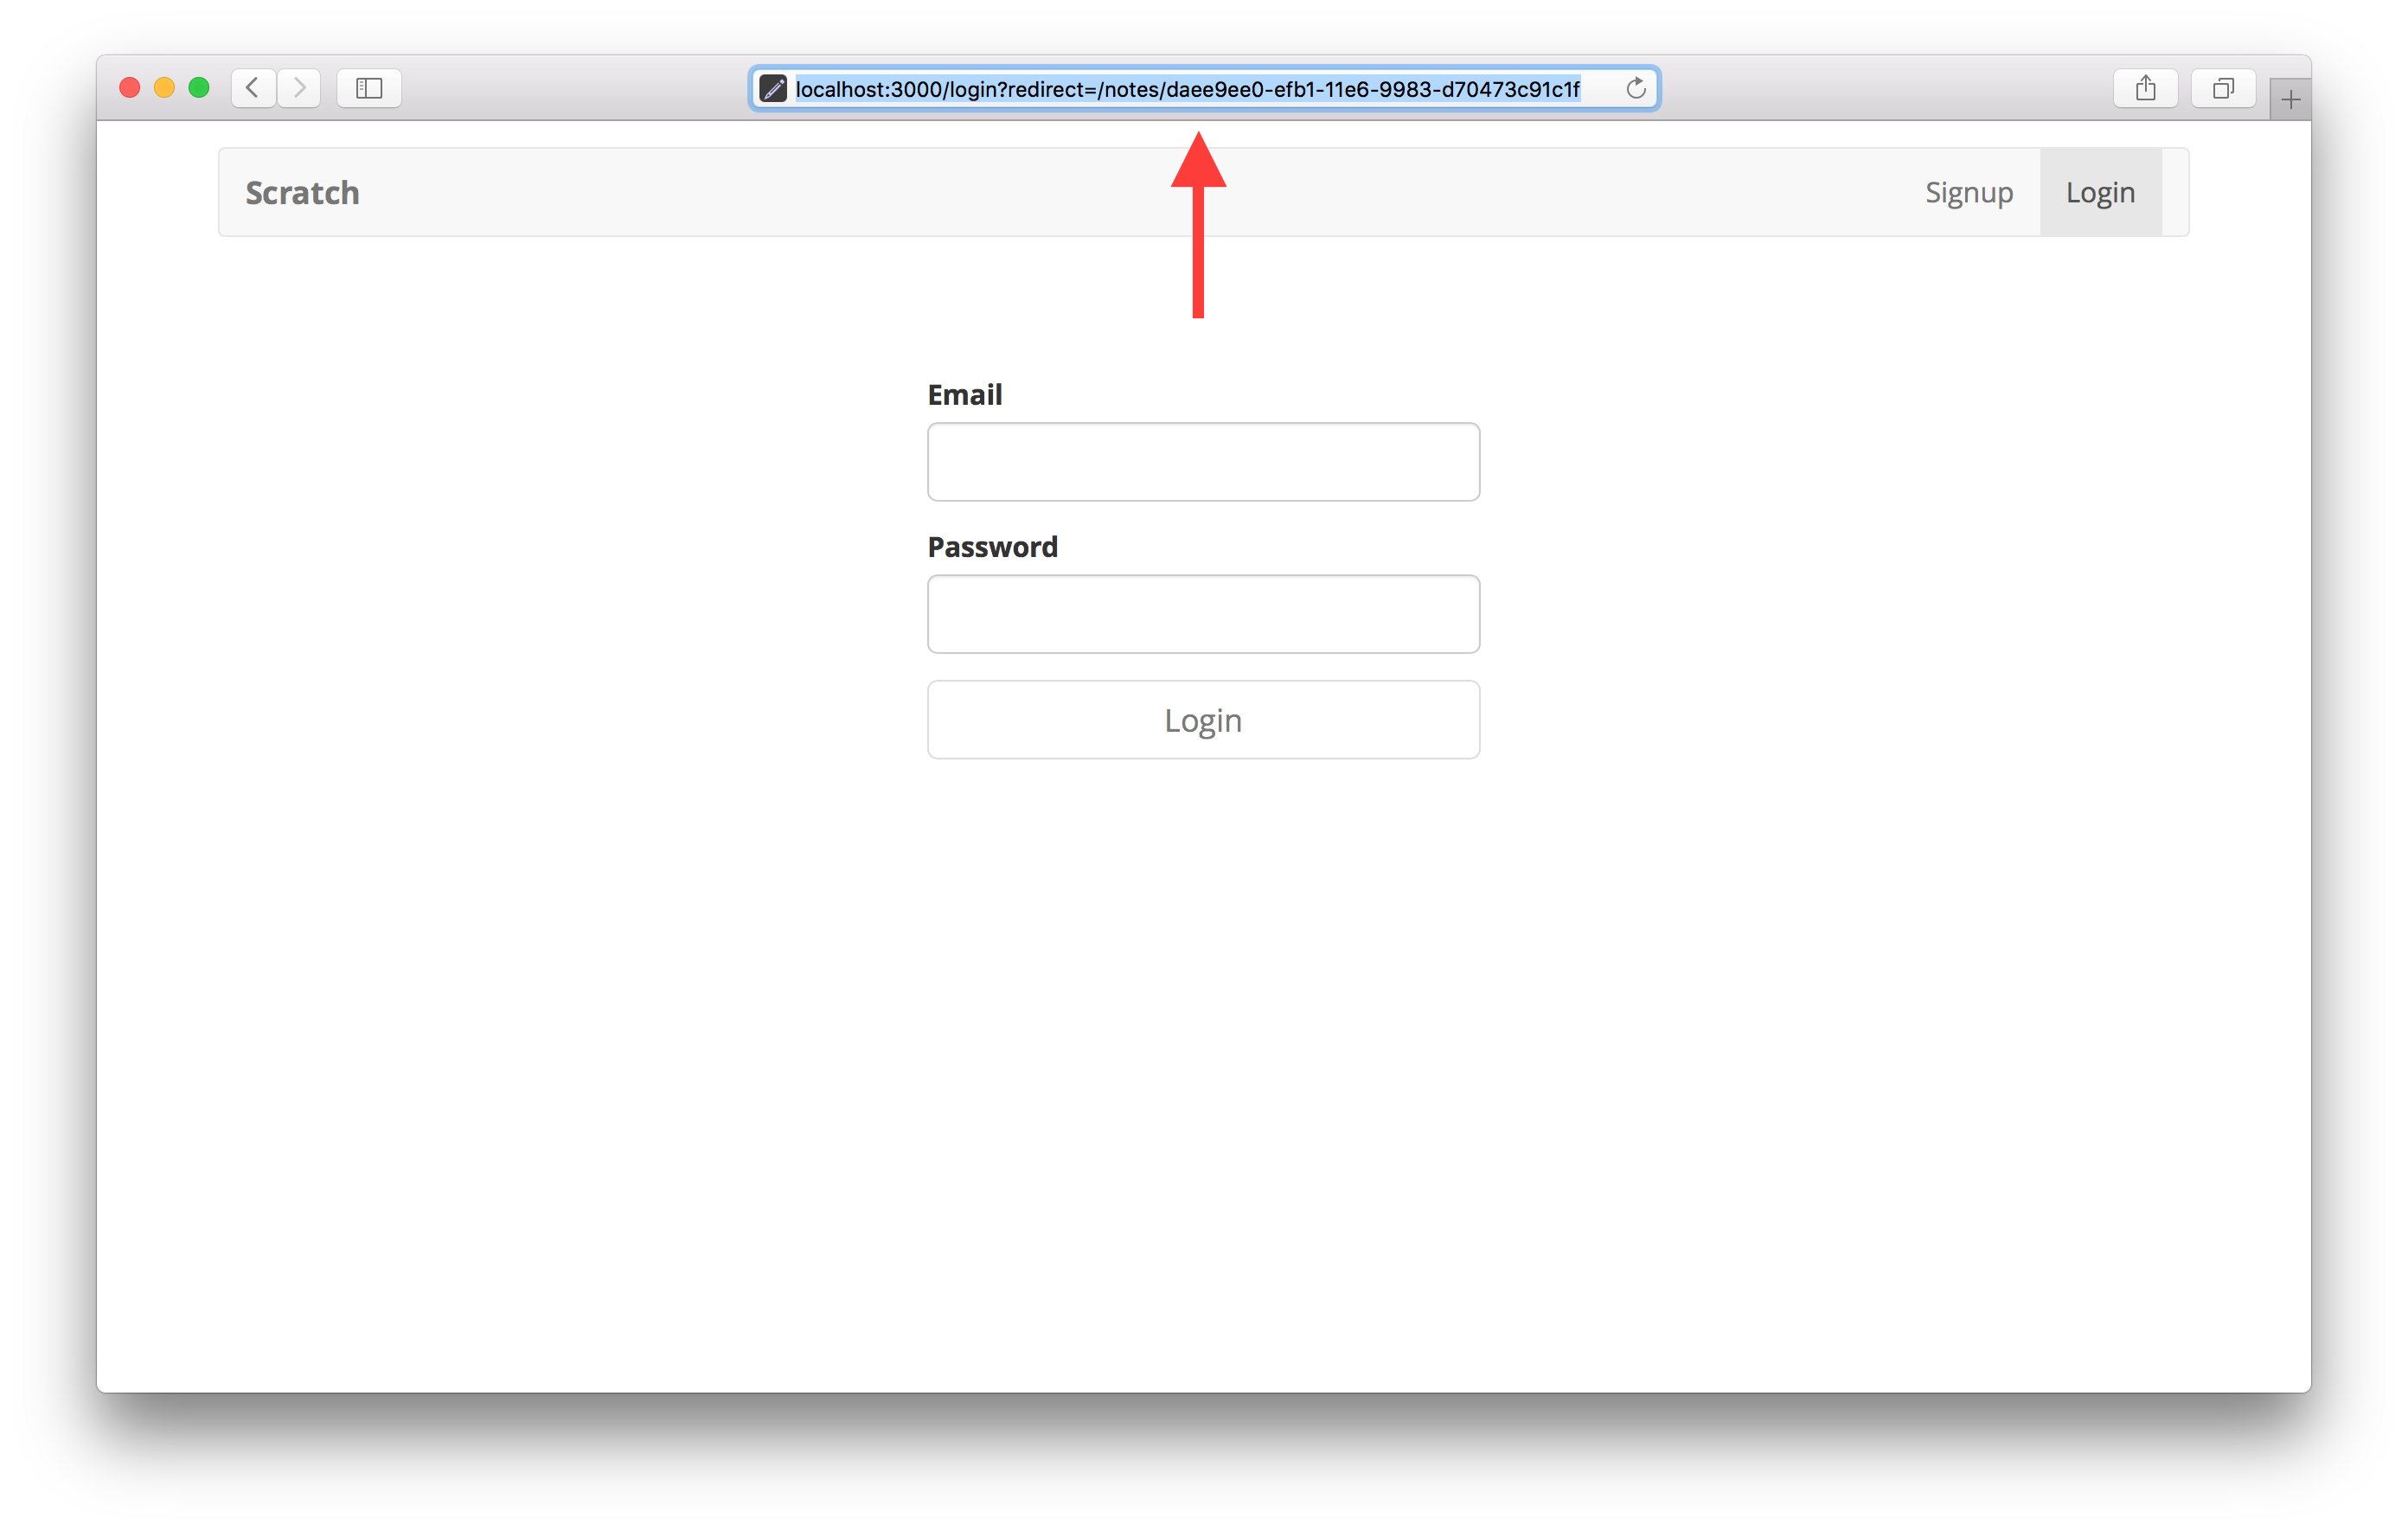 Note page redirected to login screenshot